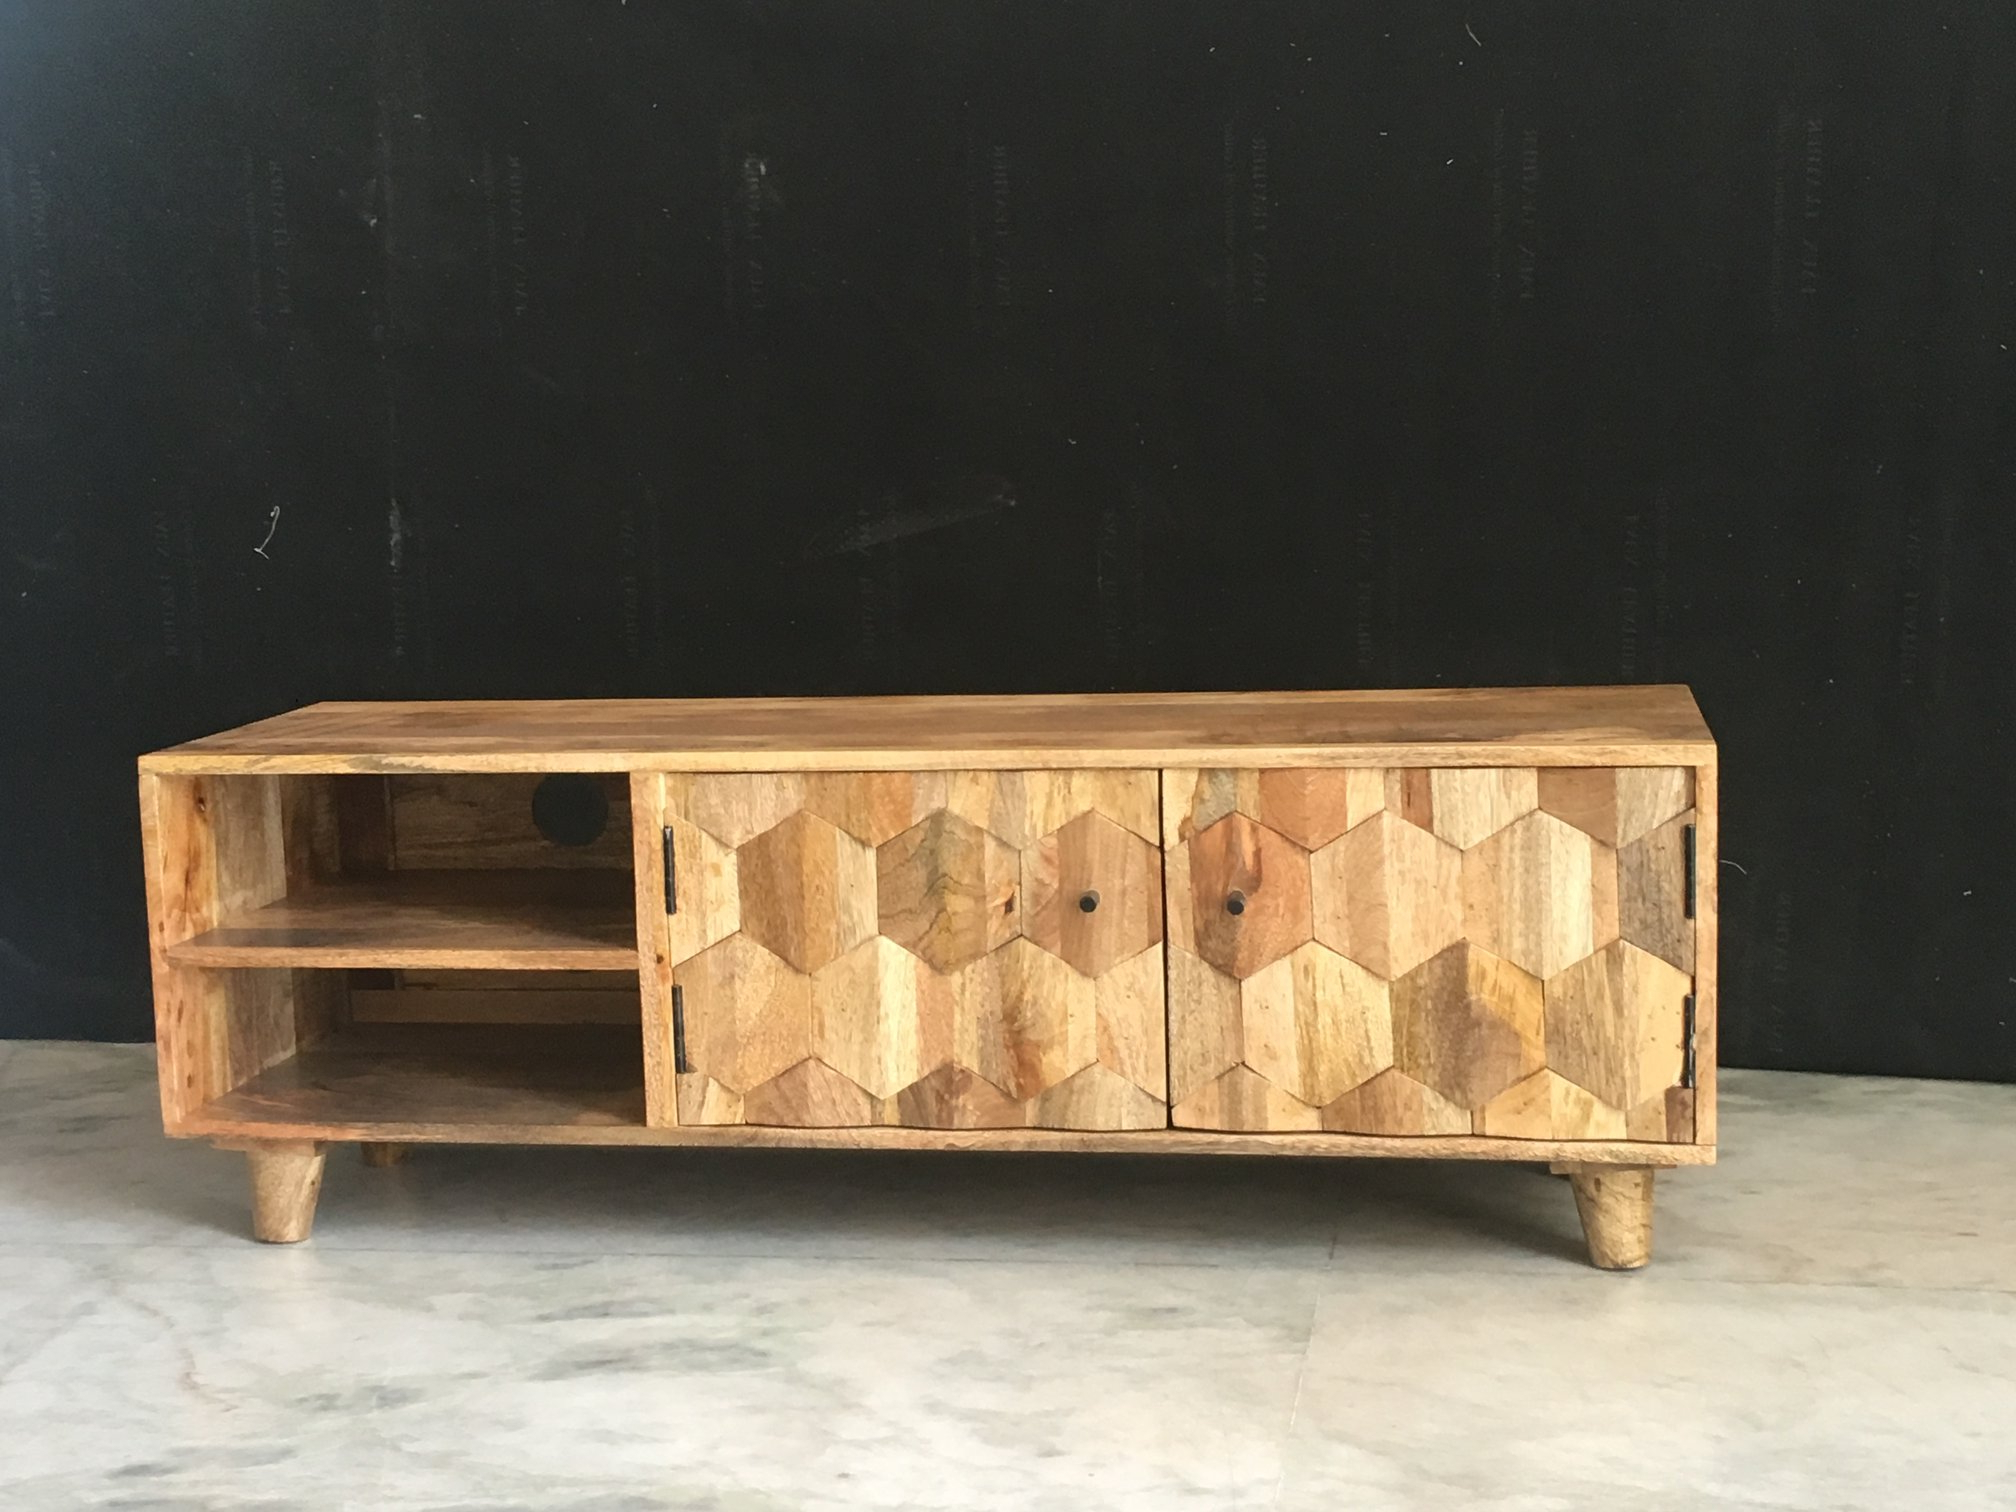 Light Mango Wood Tv Stand / Media Unit With Hexagonal Patterns In Widely Used Mango Wood Tv Cabinets (View 5 of 20)